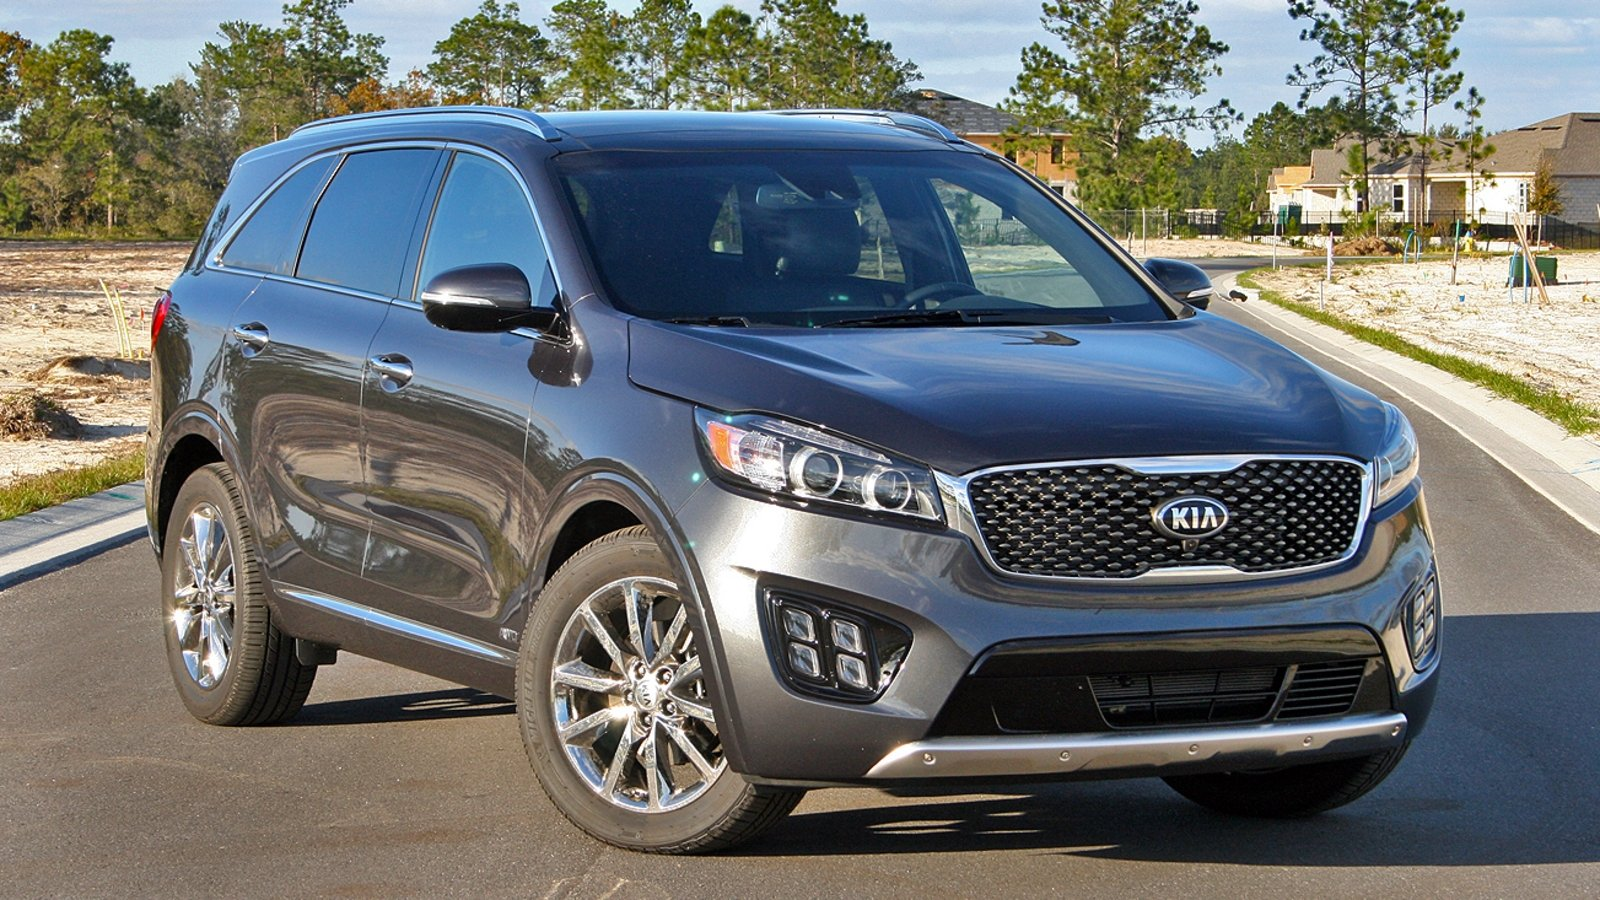 2017 kia sorento sxl driven review top speed. Black Bedroom Furniture Sets. Home Design Ideas